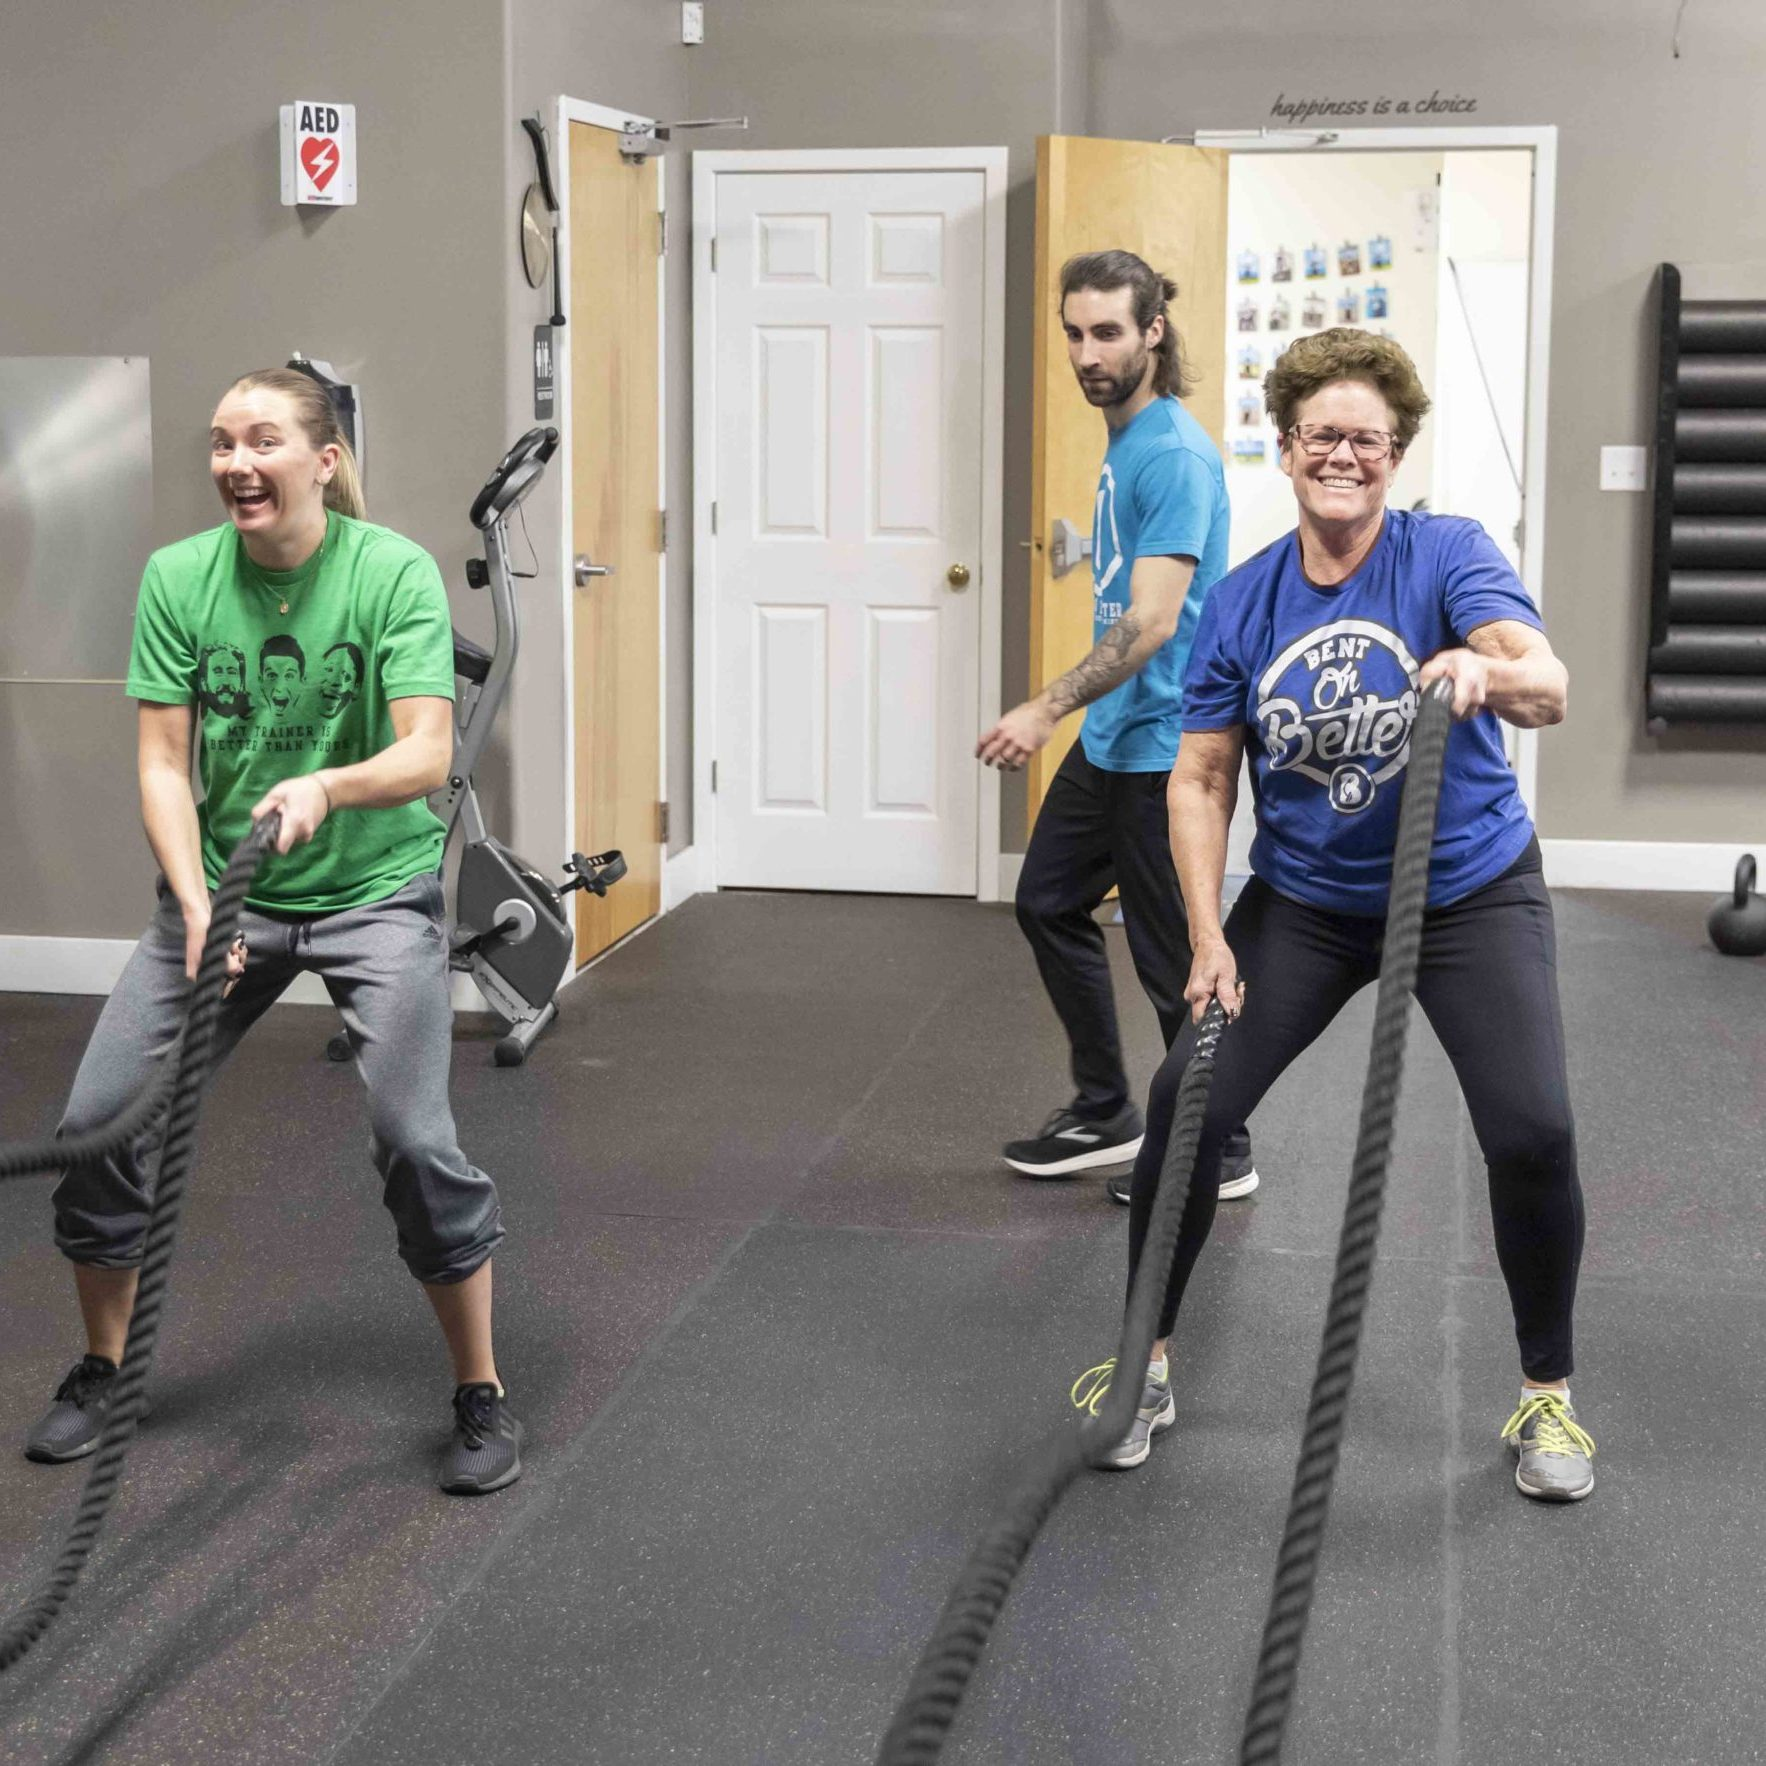 WOmens fitness Bent On Better in West Chester PA